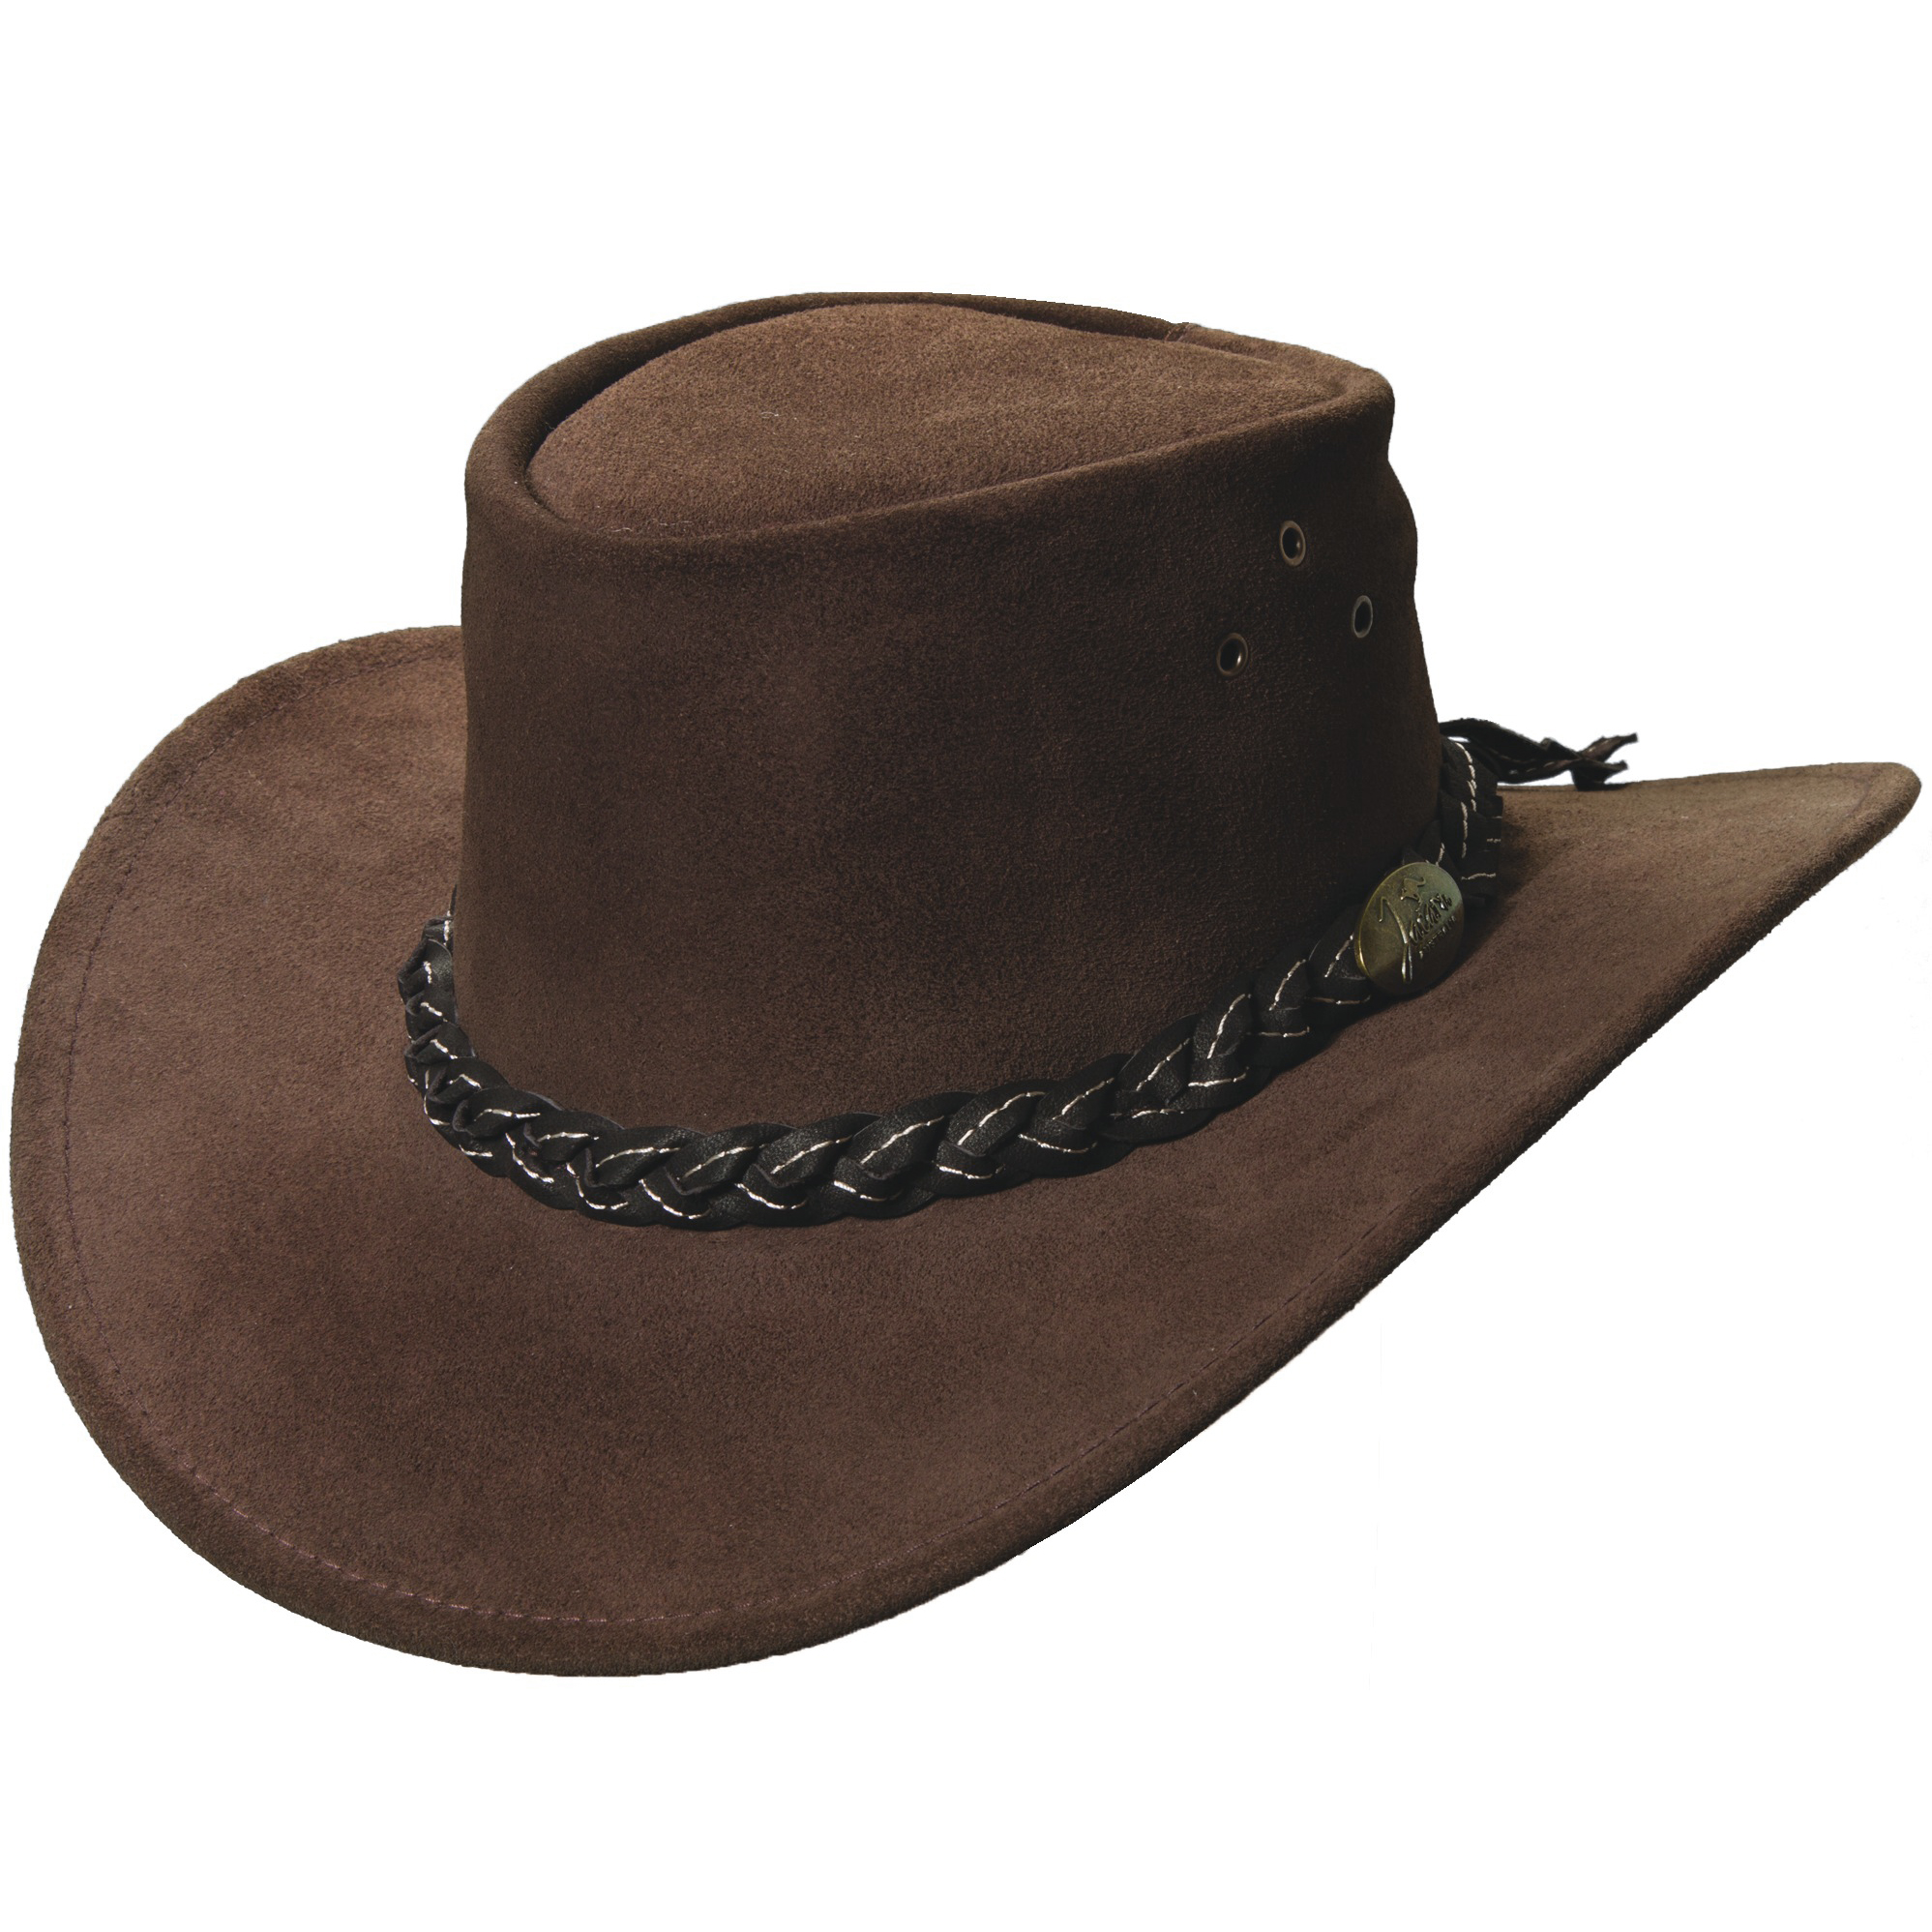 Jacaru 'Wallaroo Suede' Hat | Explorer Hats